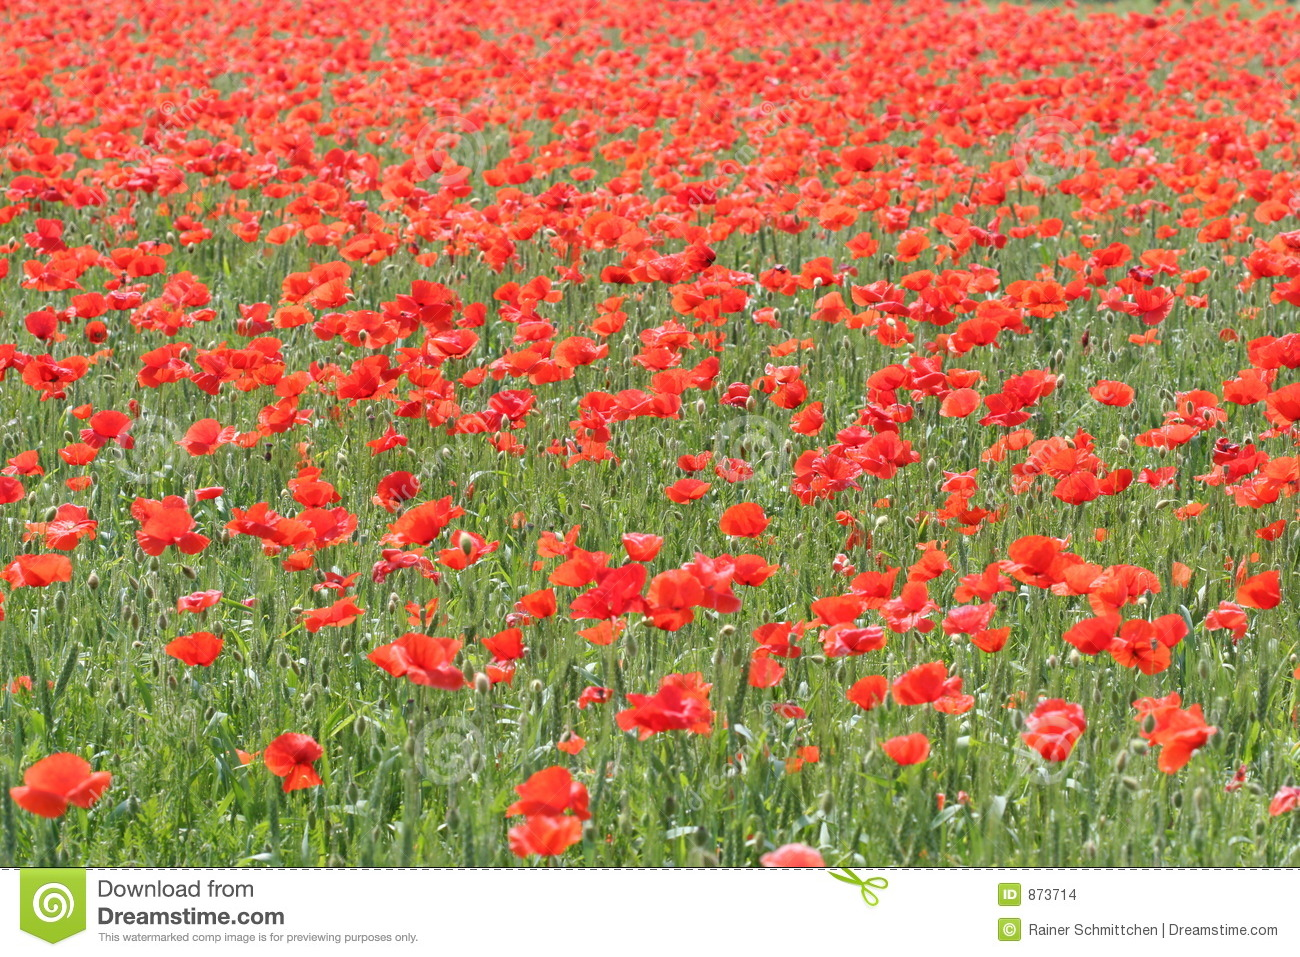 Corn-poppy field